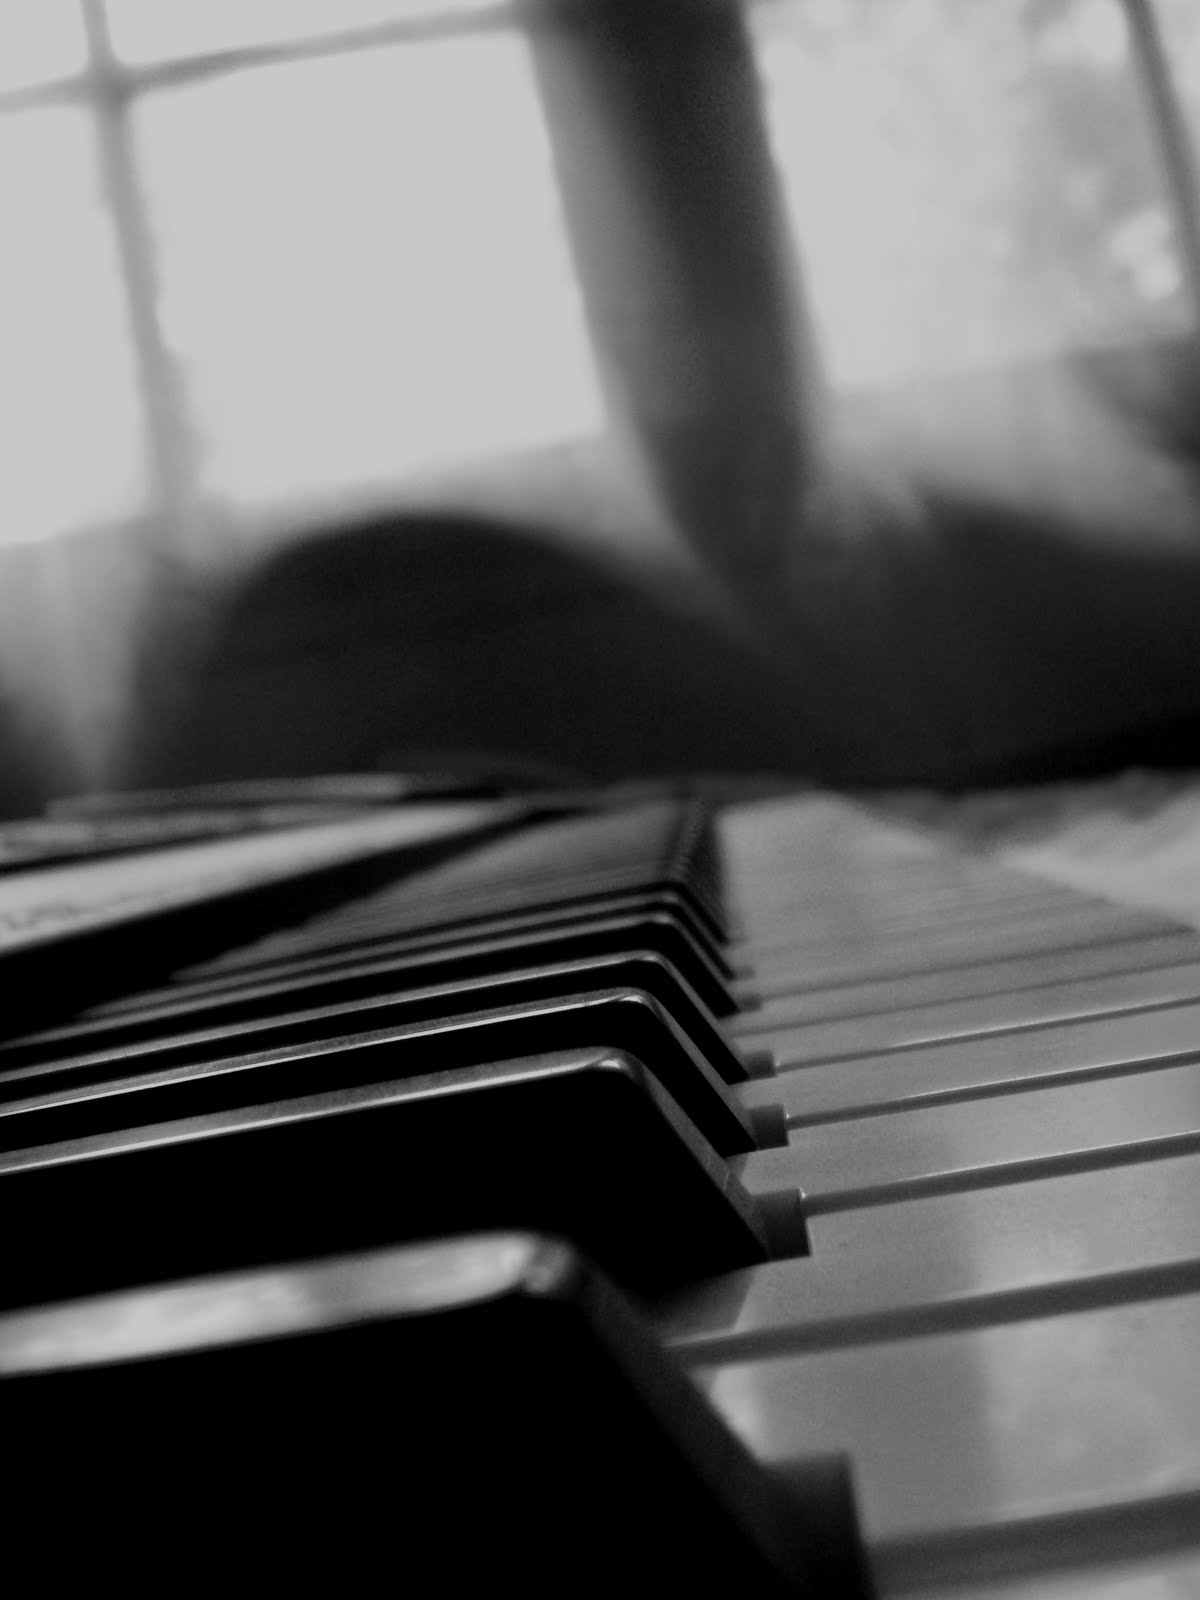 The piano society free classical music - Bar piano blanc et noir ...